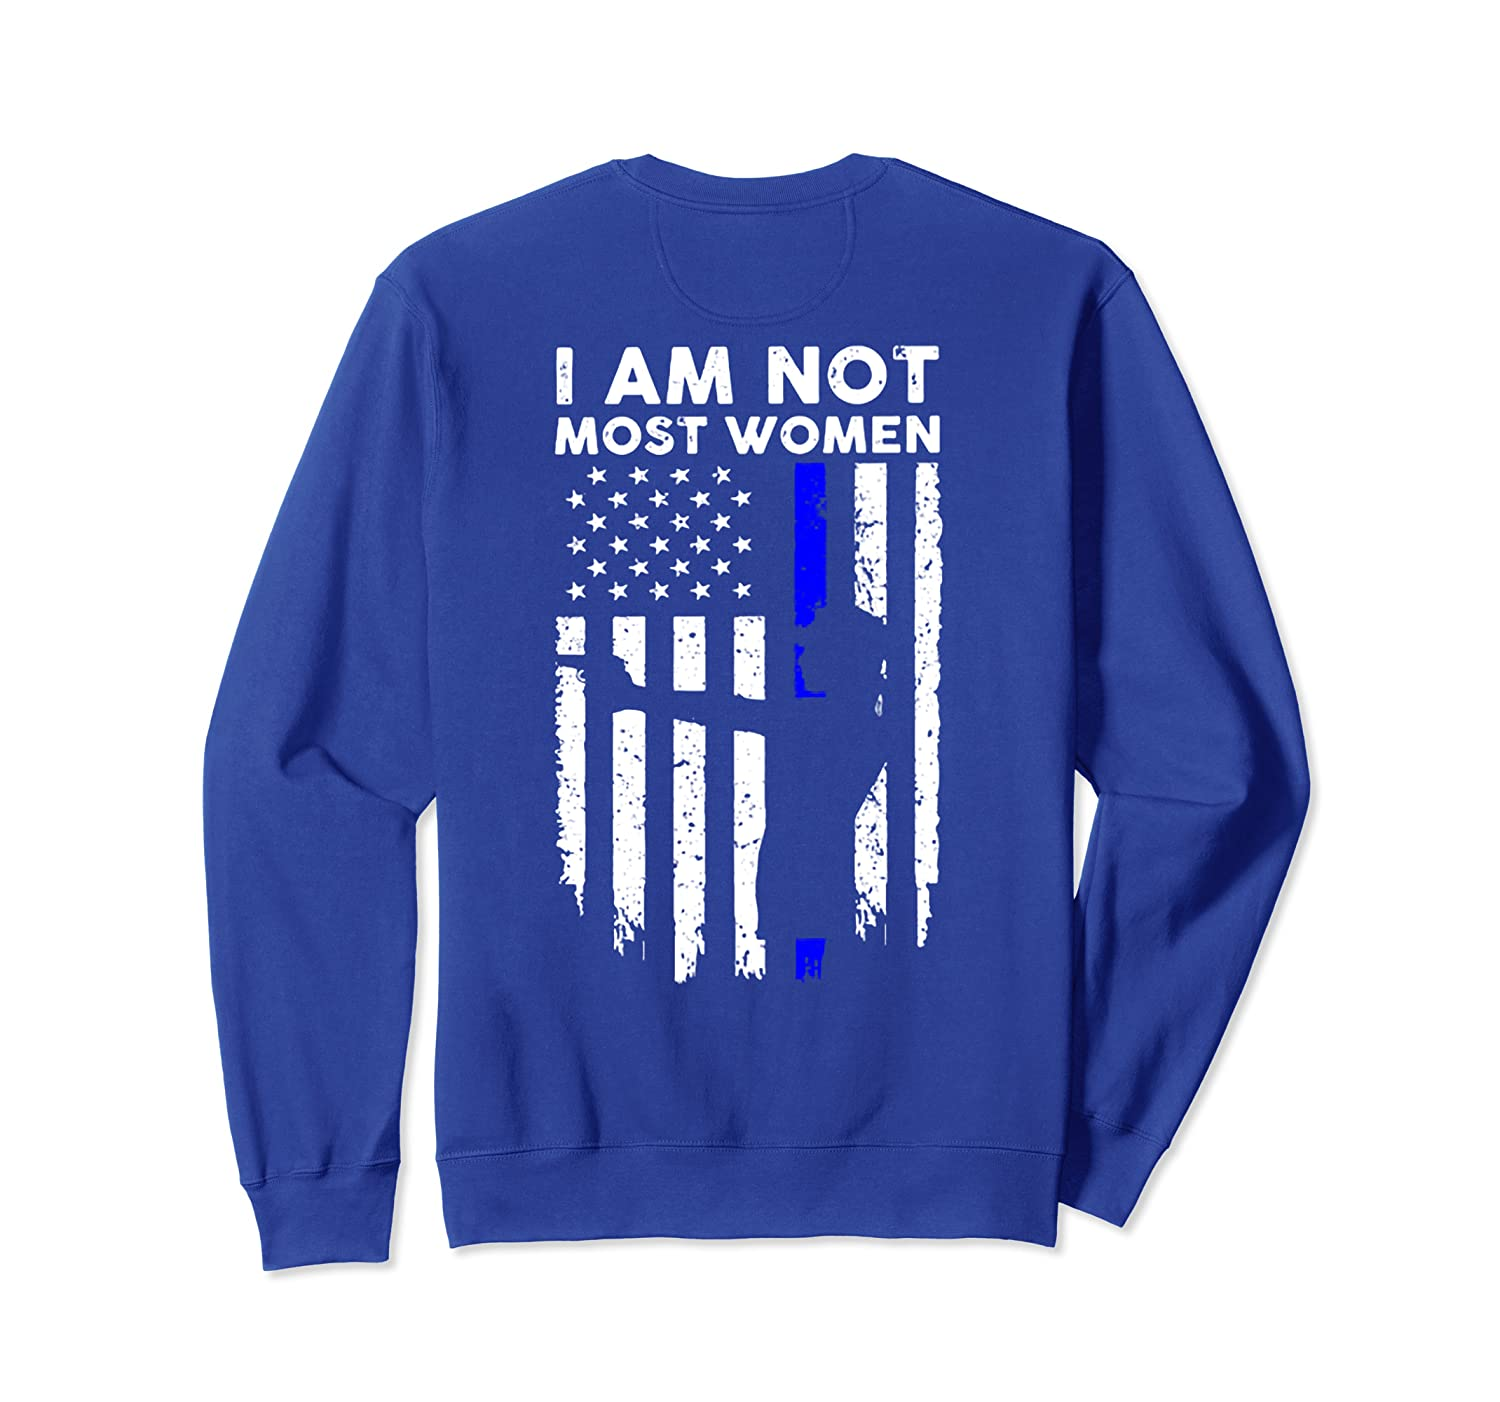 I Am Not Most Women Thin Blue Line USA Flag (On Back) Sweatshirt Unisex Tshirt